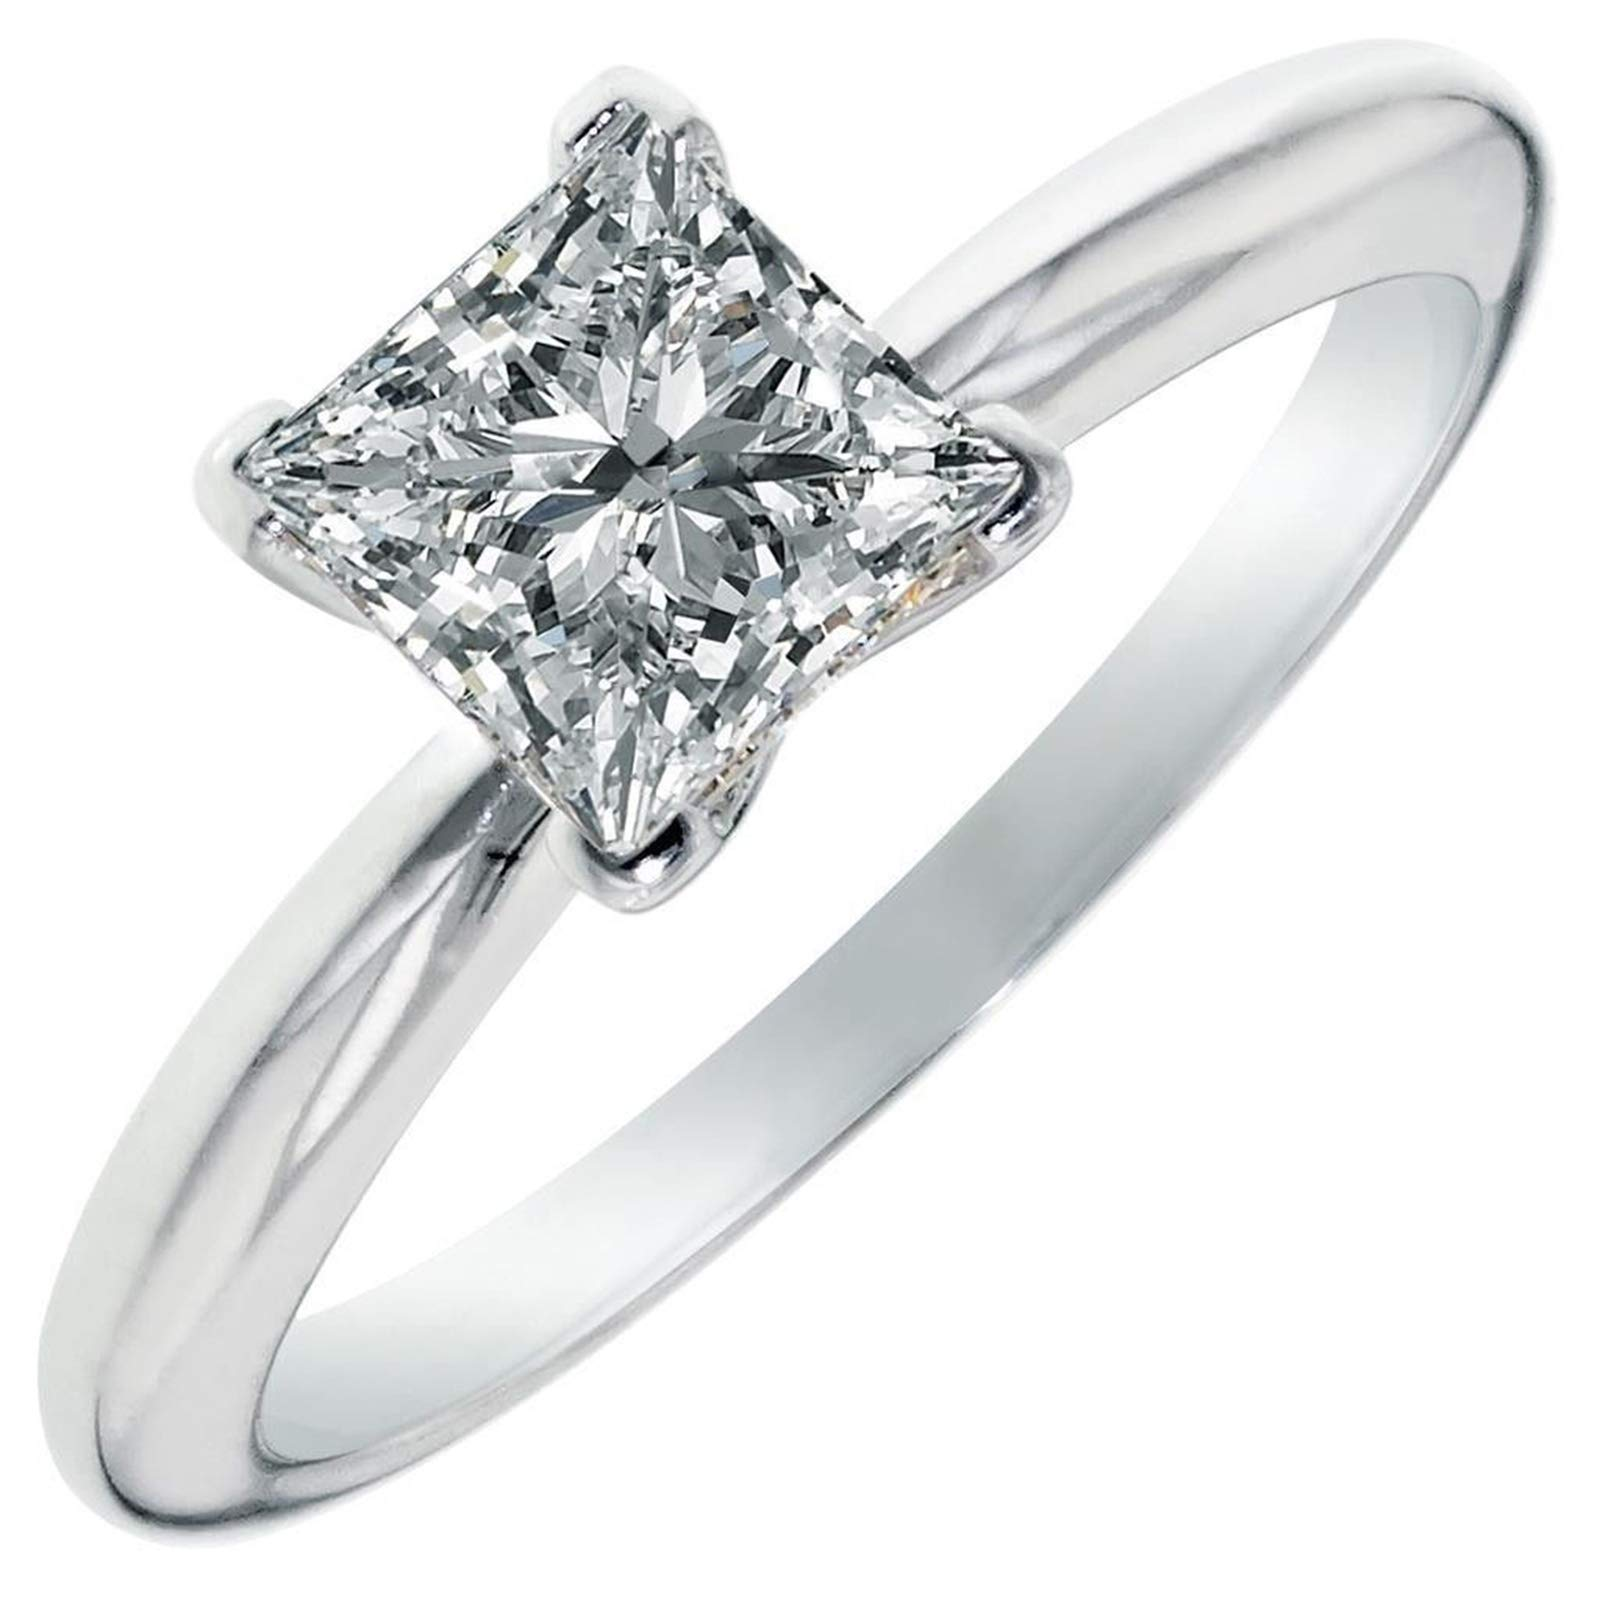 3.0 ct Brilliant Princess Cut Solitaire Highest Quality Lab Created White Sapphire Ideal VVS1 D 4-Prong Engagement Wedding Bridal Promise Anniversary Ring Solid Real 14k White Gold for Women, SZ 5 by Clara Pucci